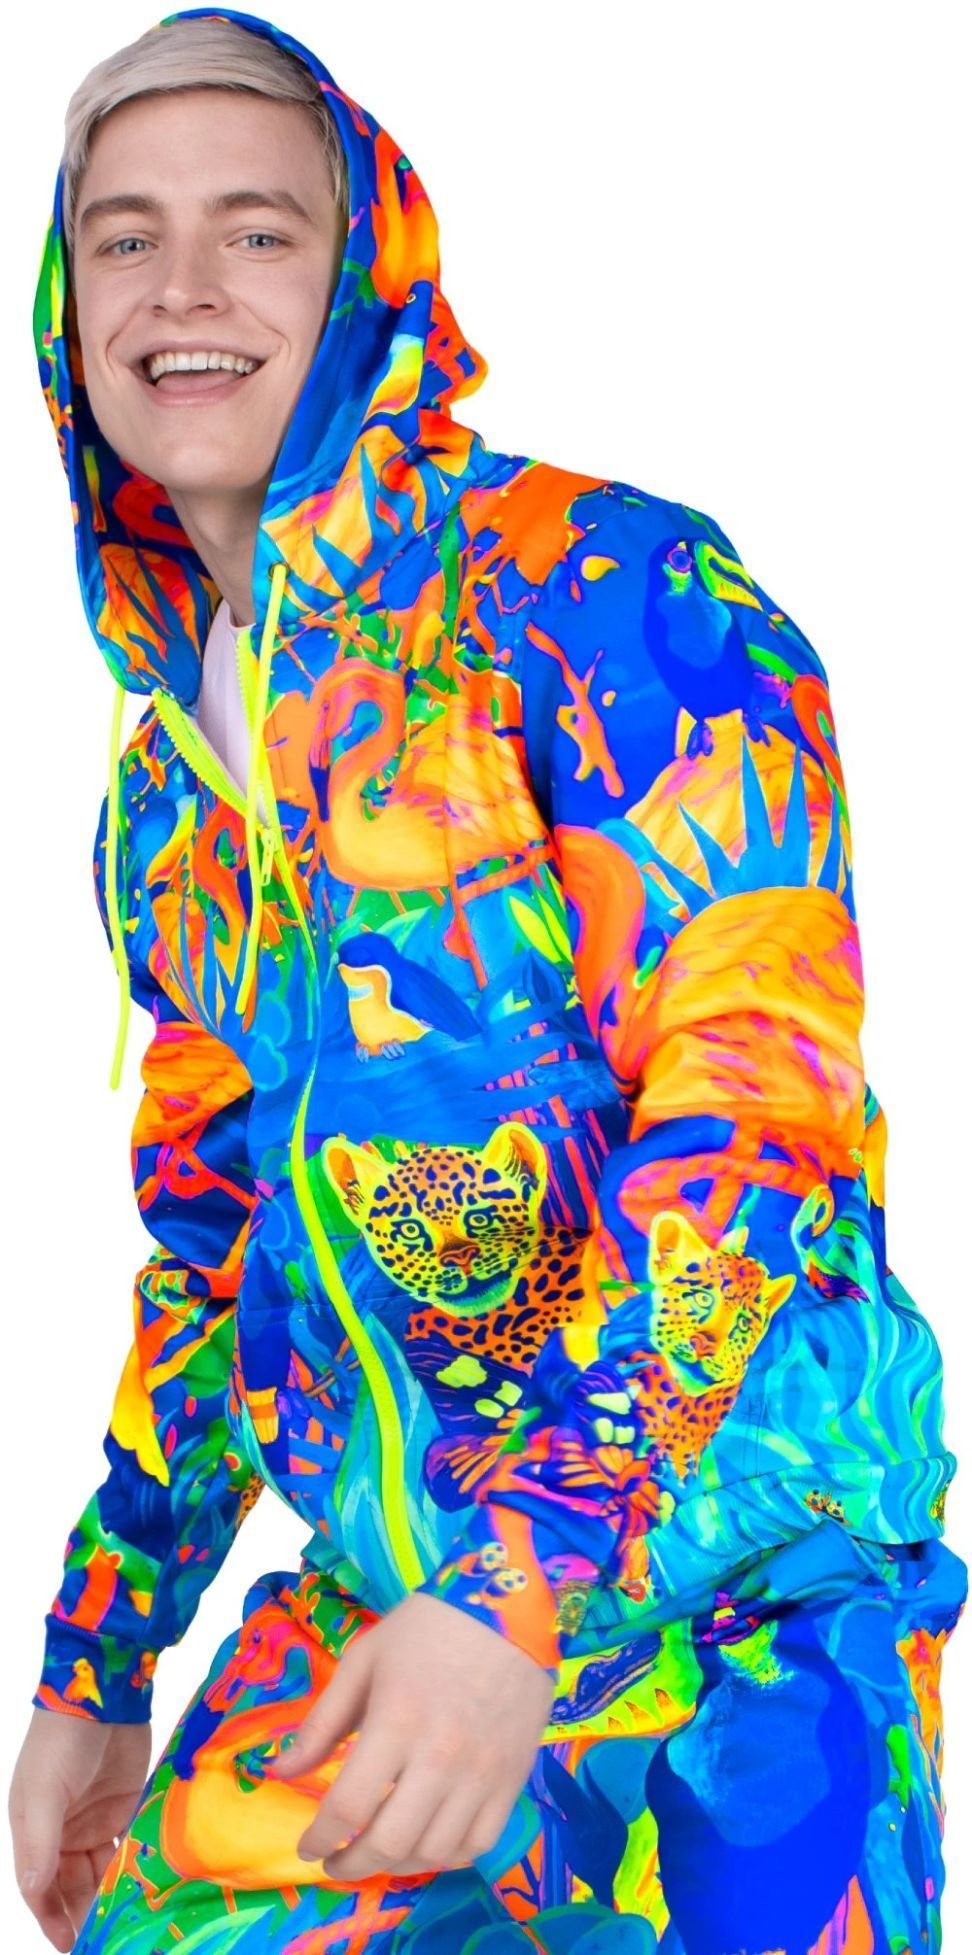 Neon Zip Hoodie Glow in The Blacklight Lion Jungle zhm13